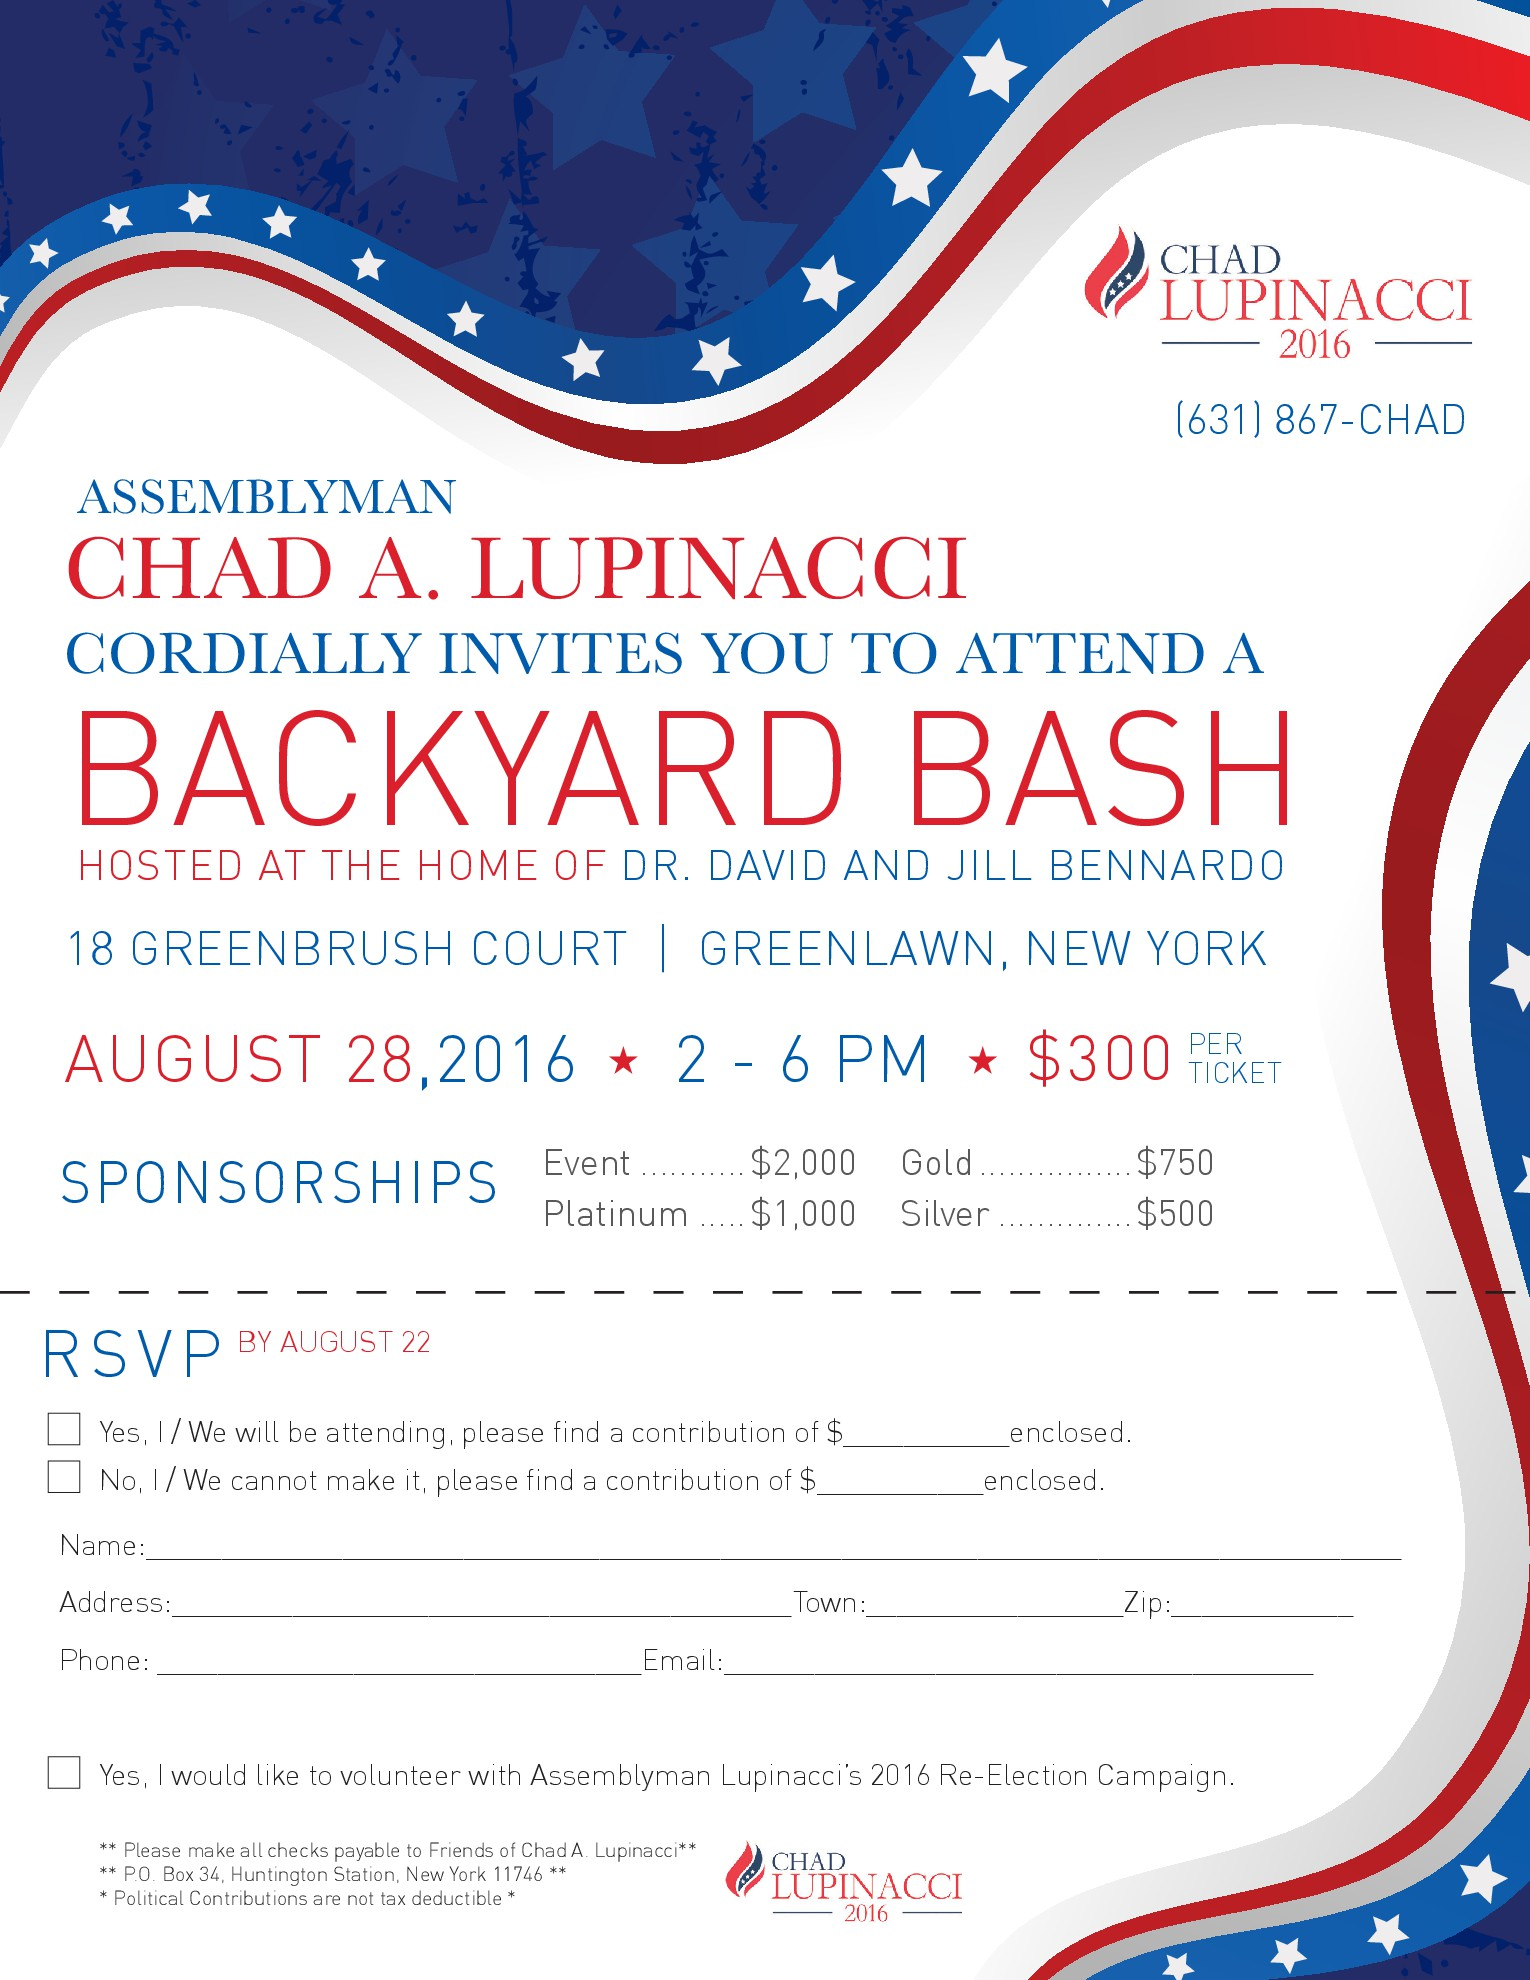 Chad Lupinacci Backyard Bash